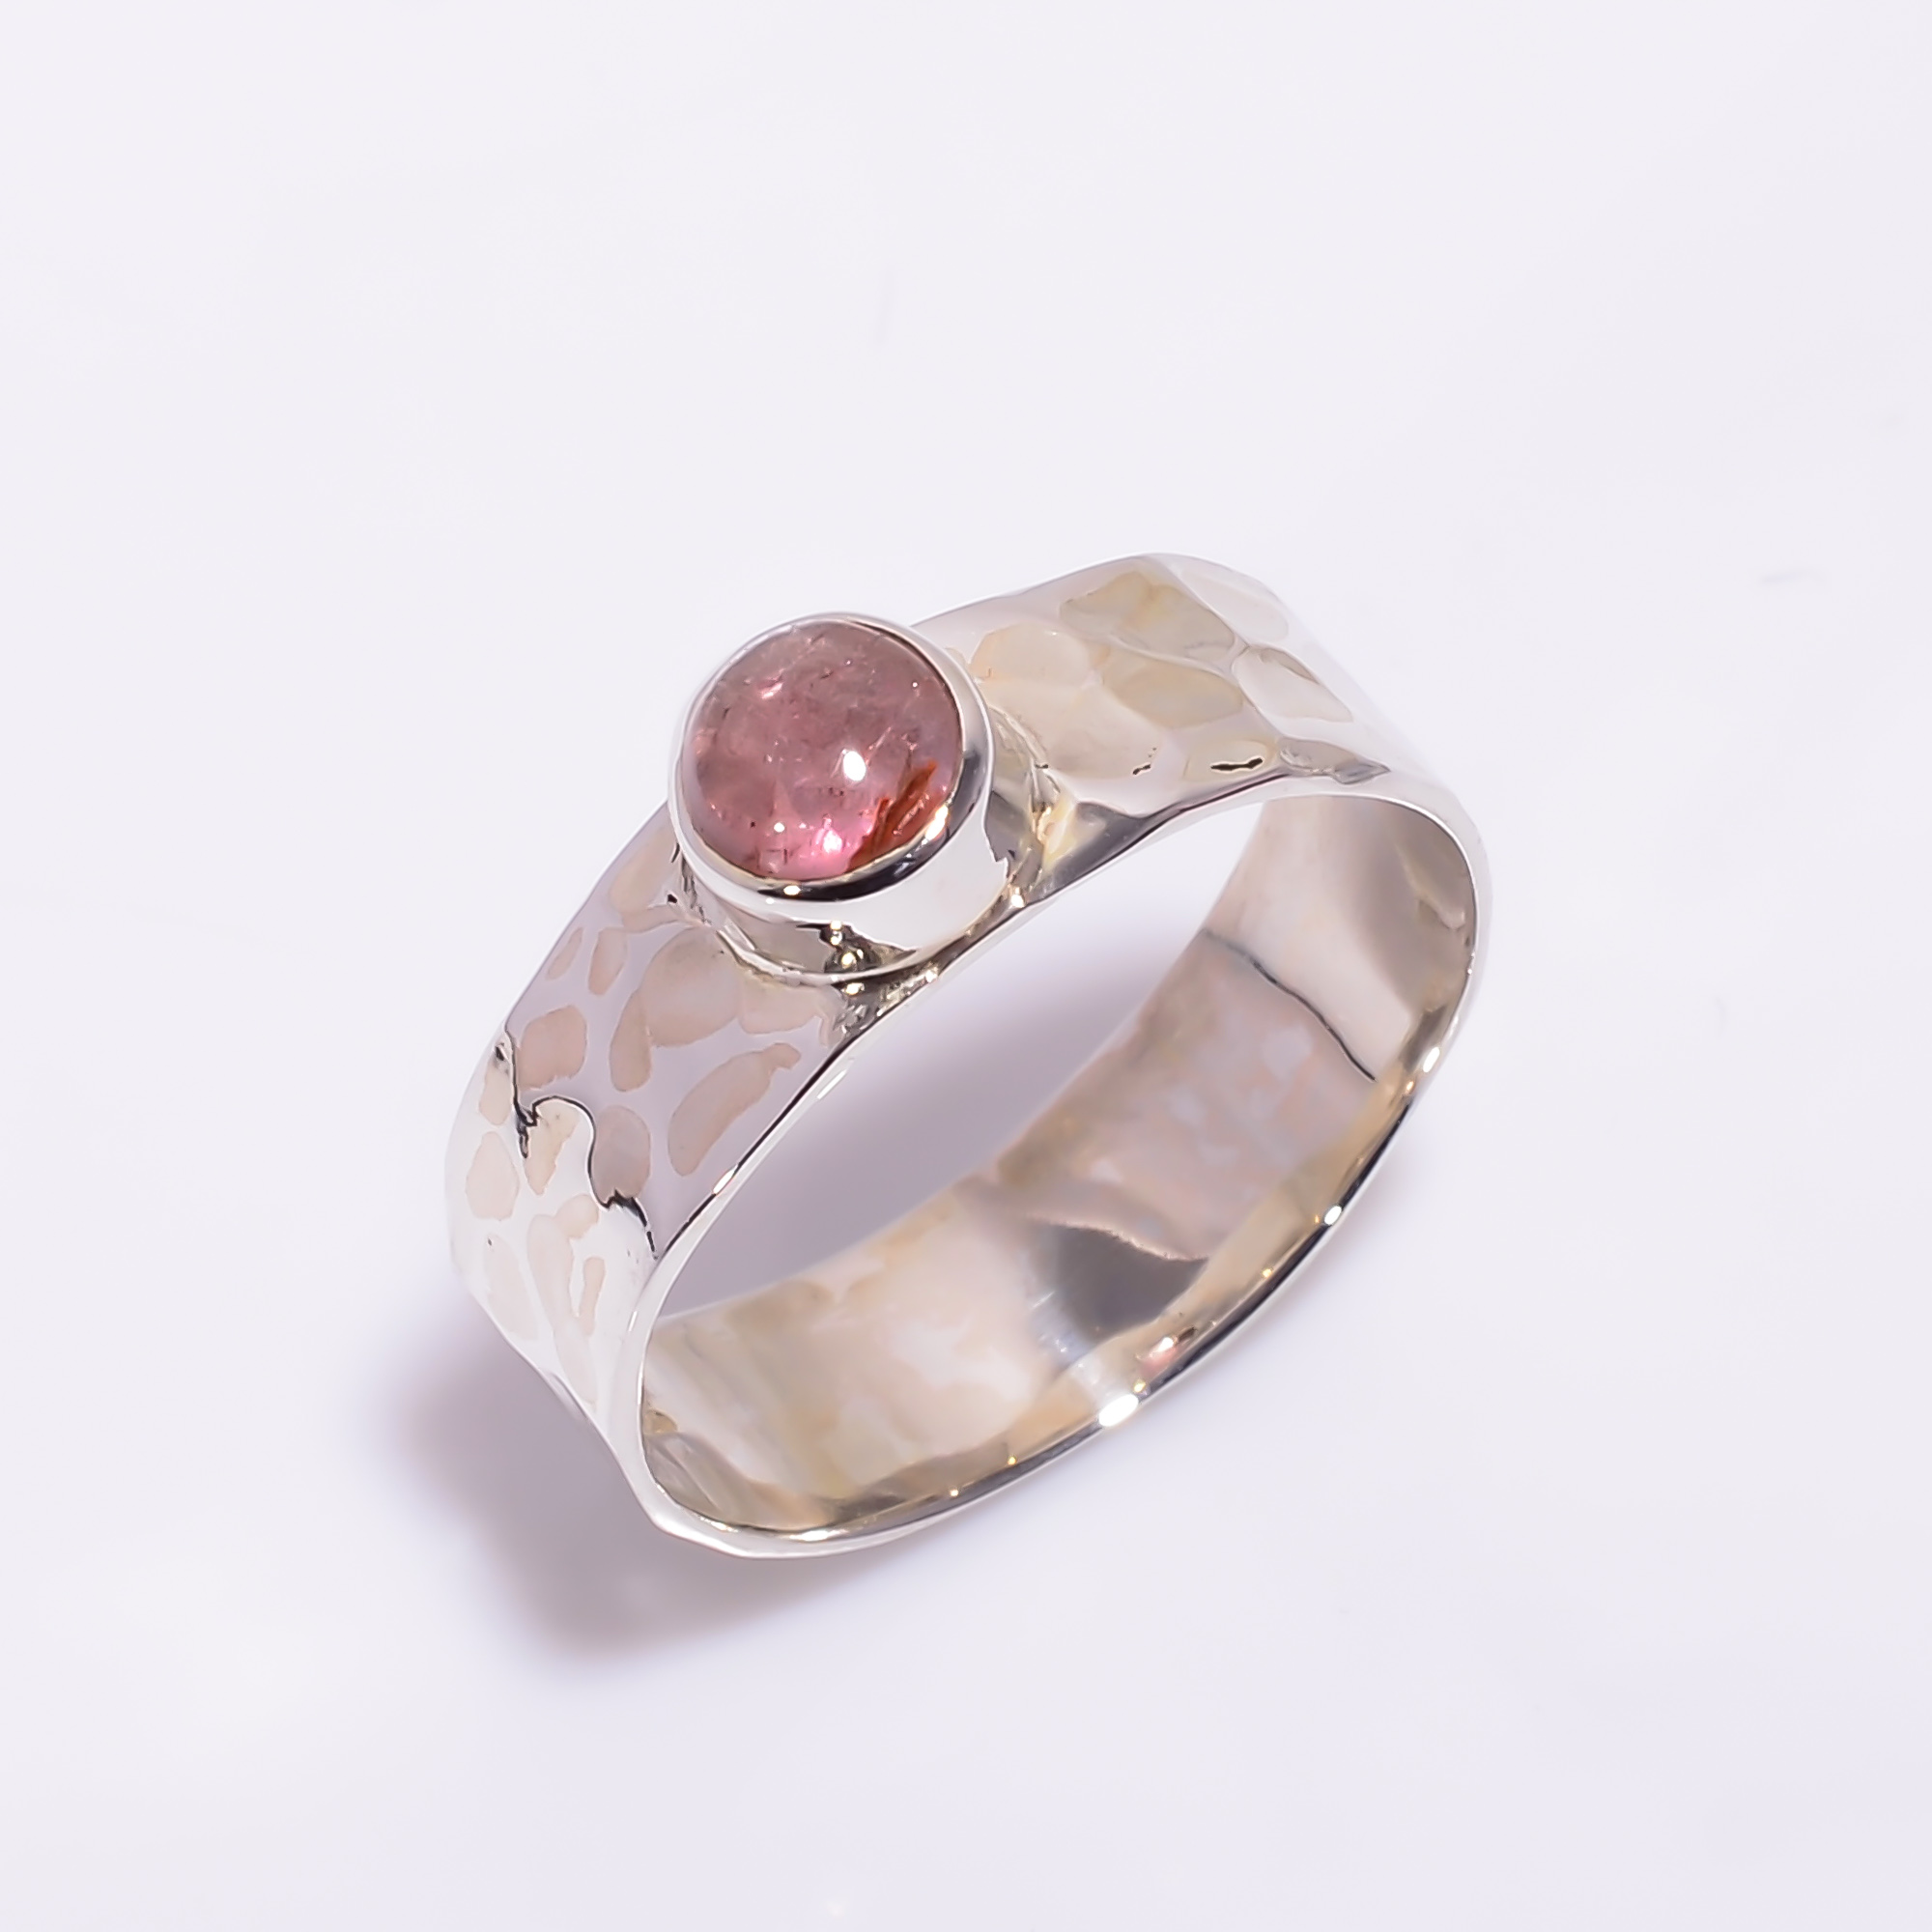 Pink Tourmaline Gemstone 925 Sterling Silver Hammered Ring Size US 7.5